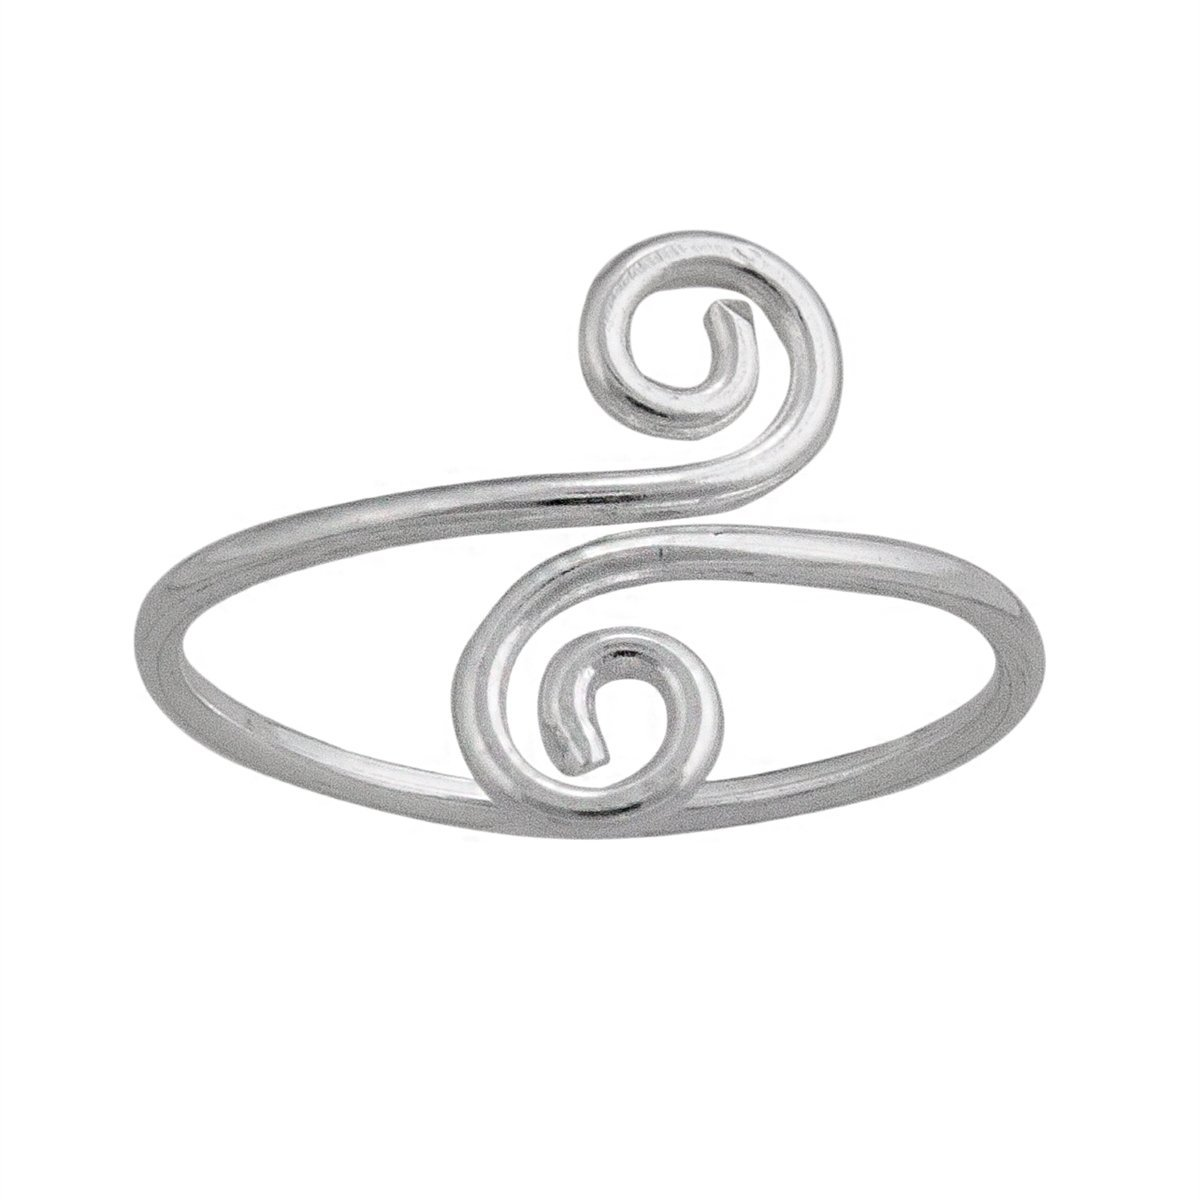 sterling-silver-swirl-ring - 1 - Charles Albert Inc